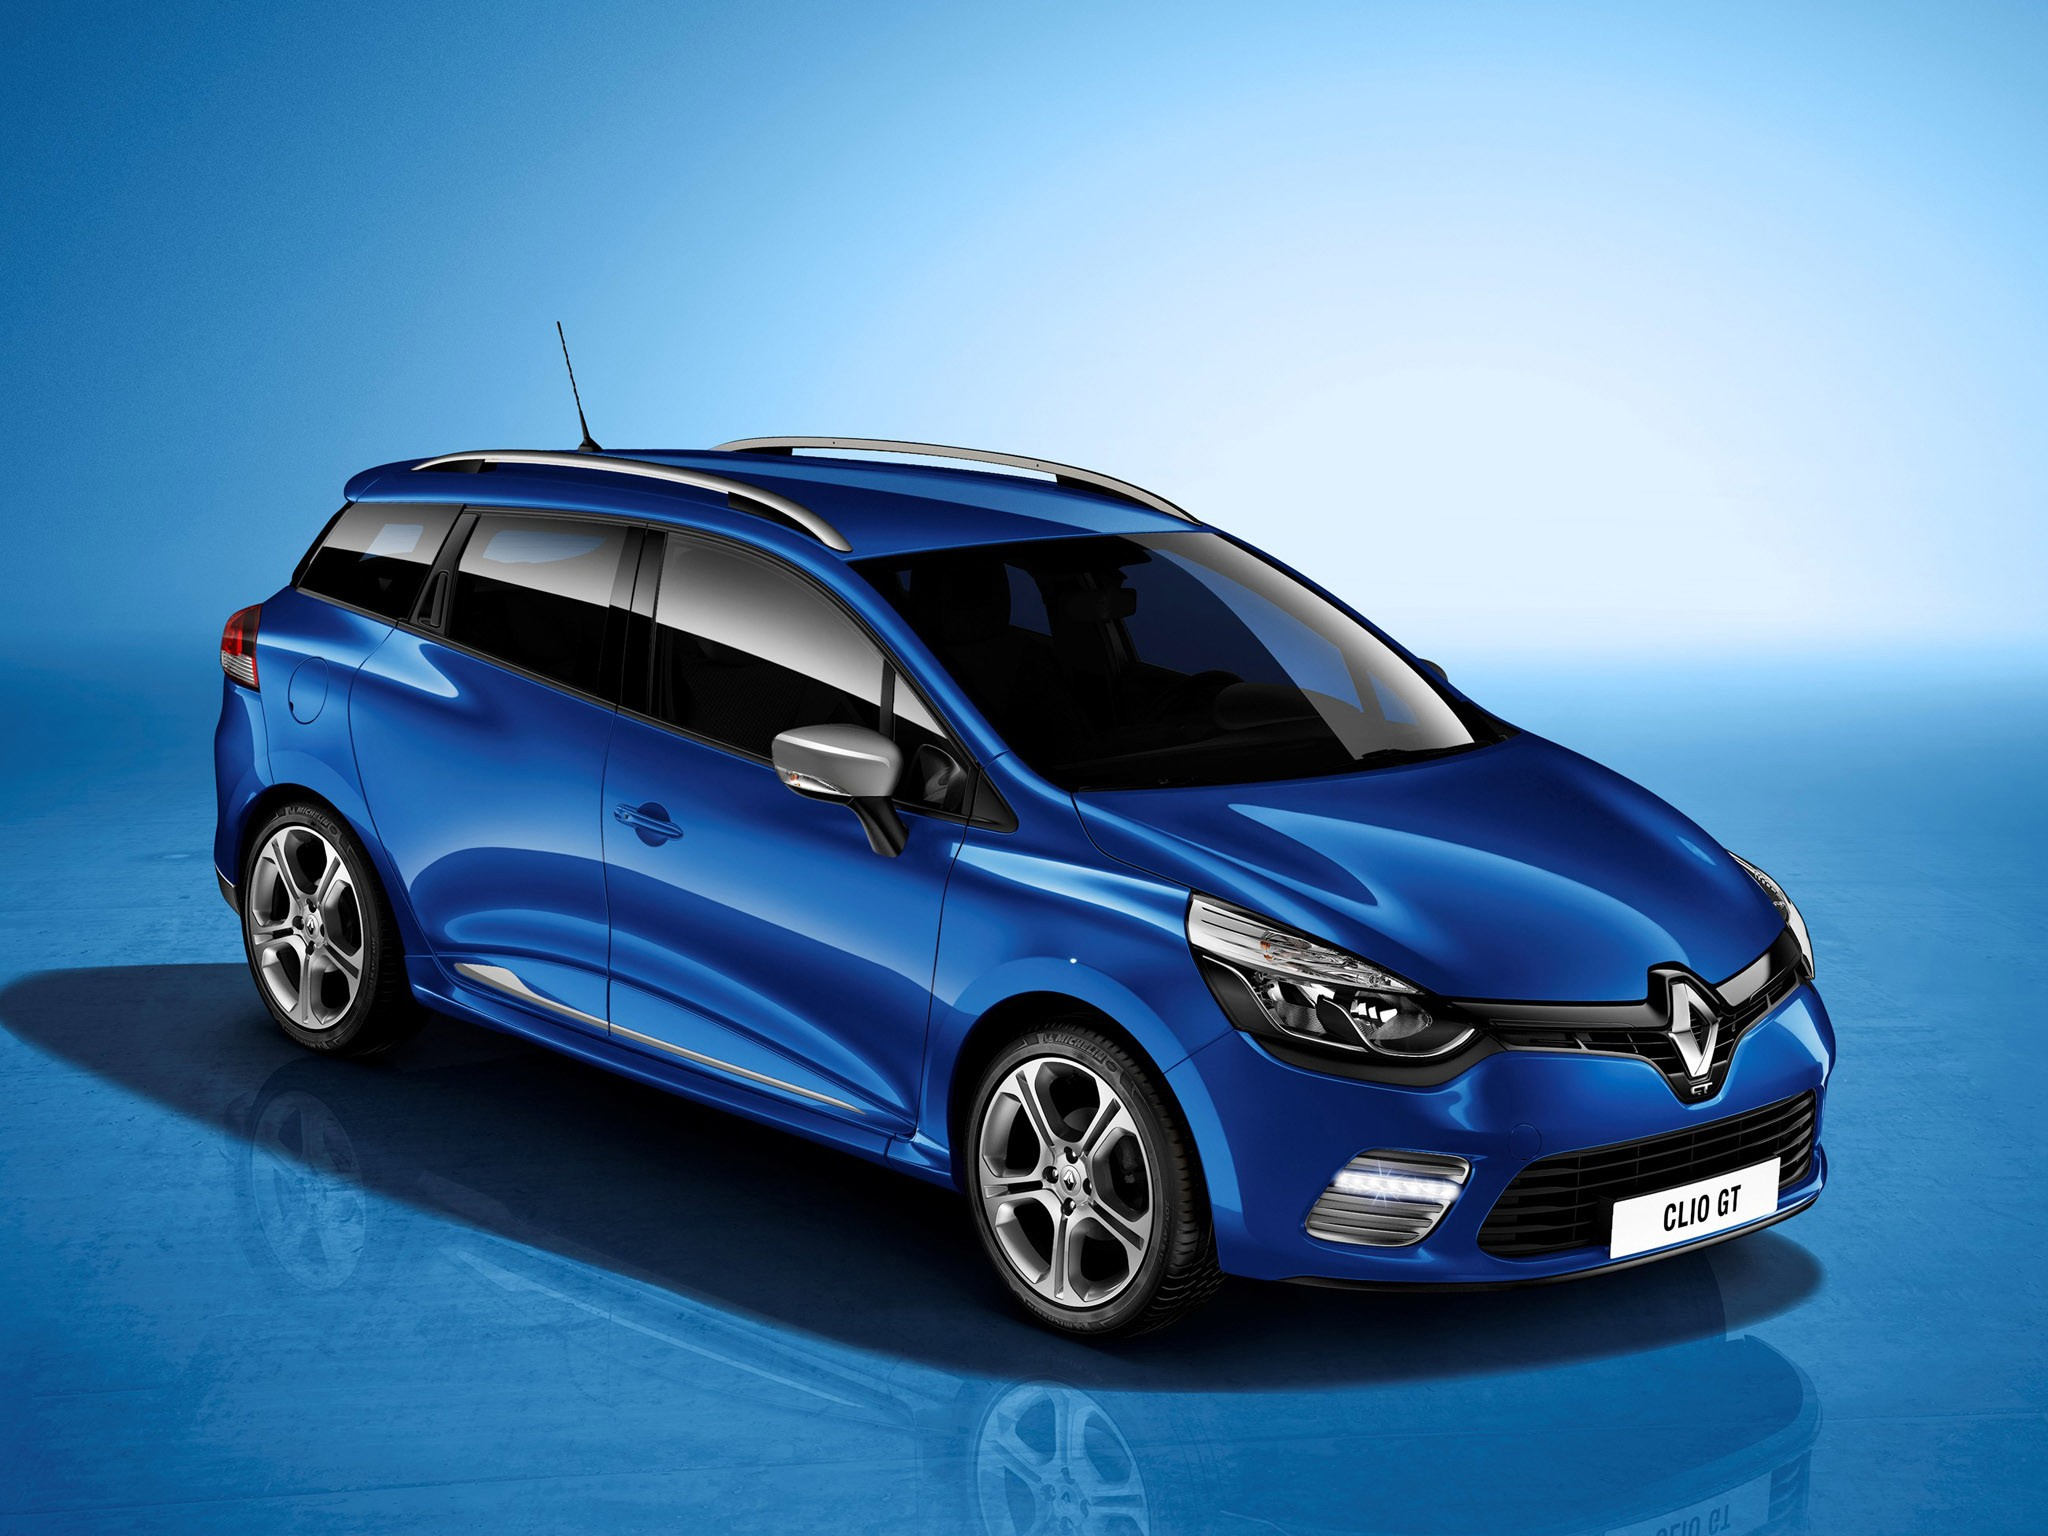 2013 Renault Clio GT Estate